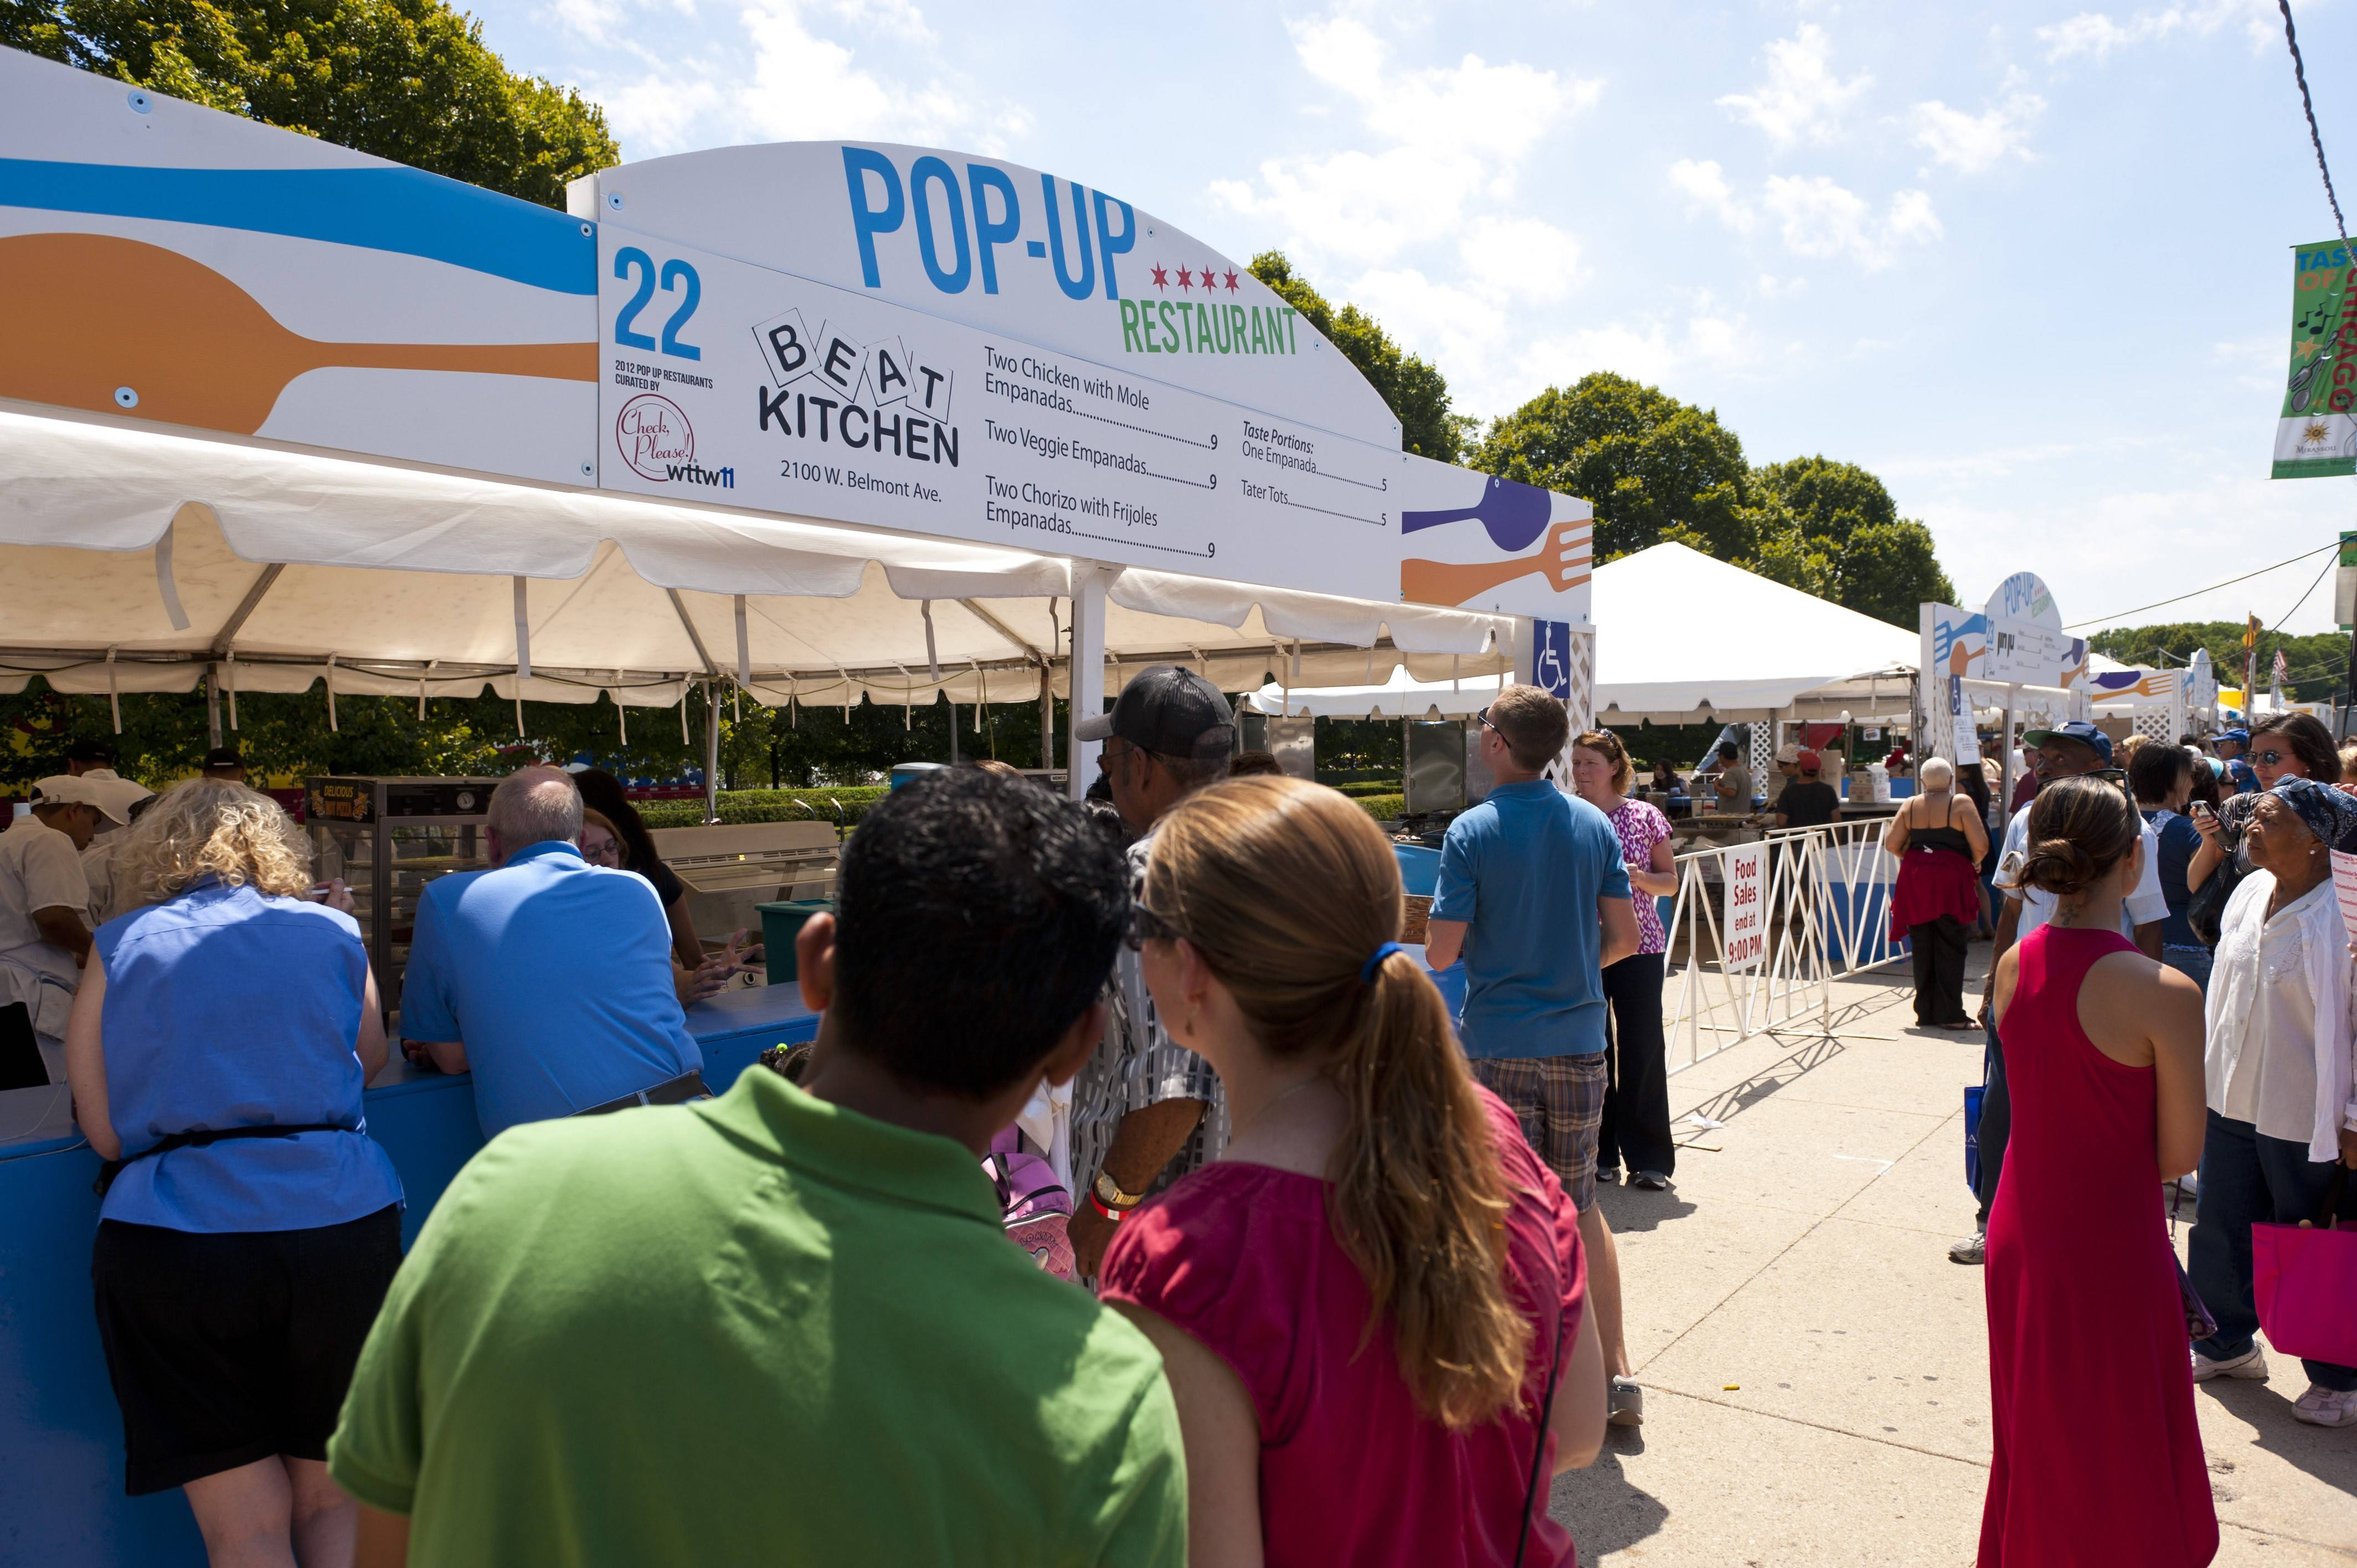 Eight new two-day pop-up restaurants are among the 66 food vendors at the 34th Taste of Chicago, which runs Wednesday through Sunday, July 9-13, in Grant Park.